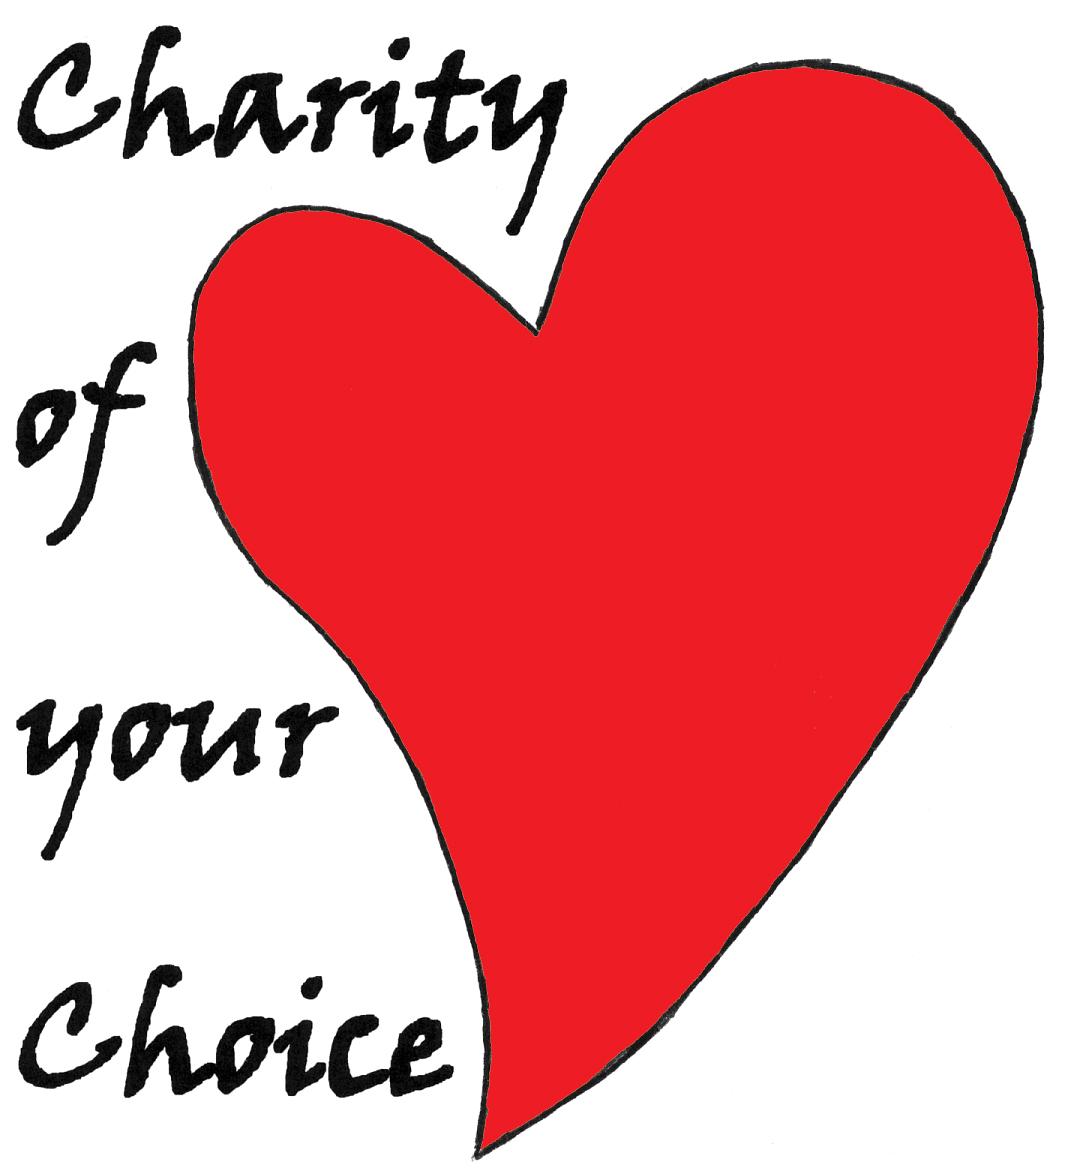 Charity of your Choice logo Colour